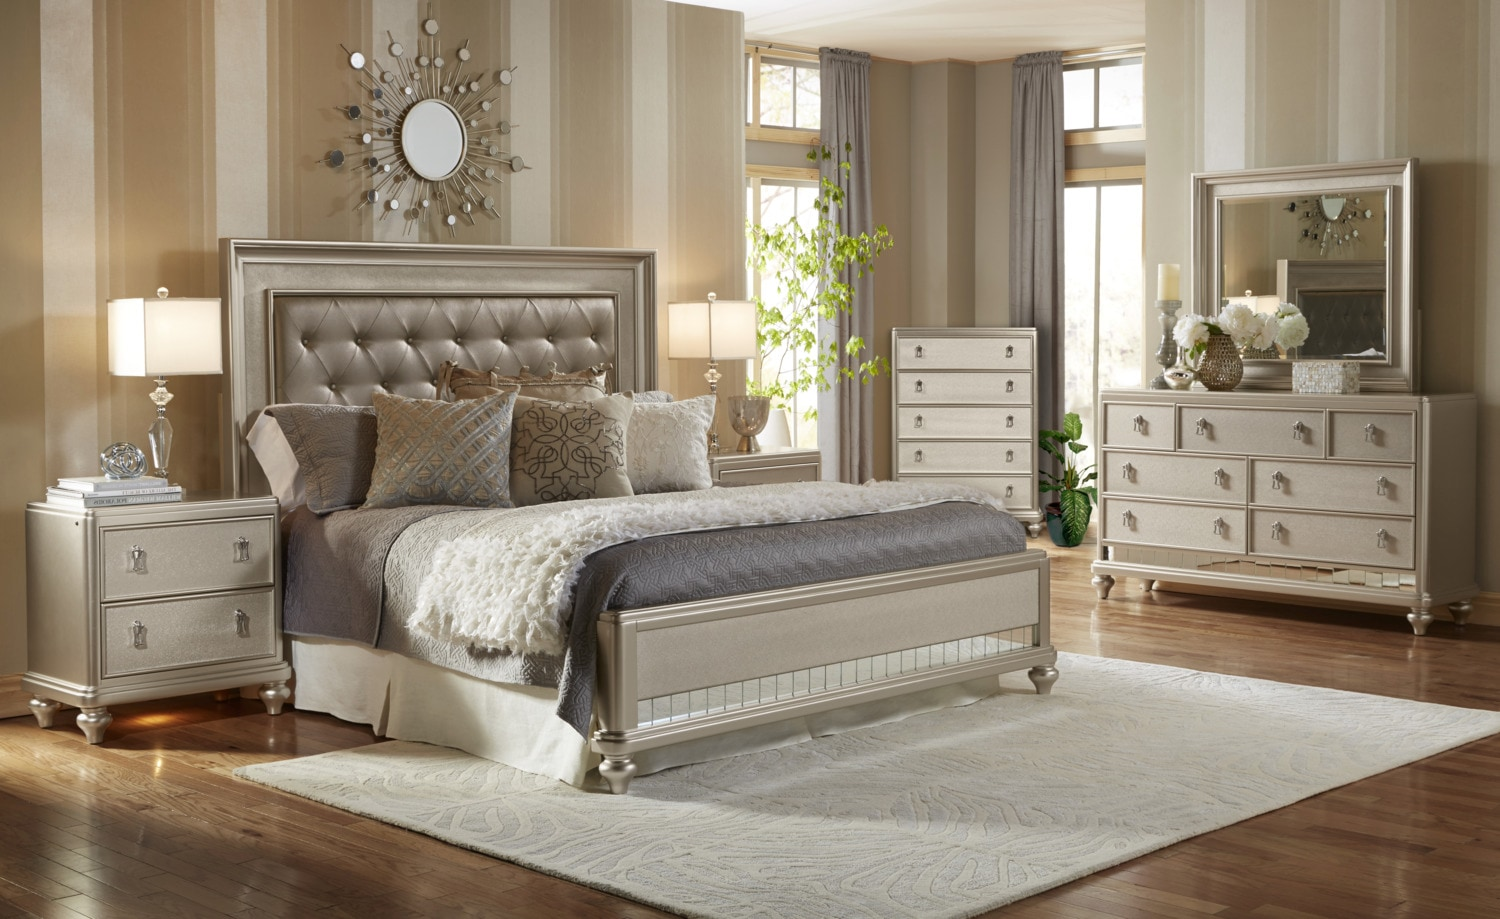 Diva 8 piece queen bedroom package the brick - Cheap bedroom furniture packages ...